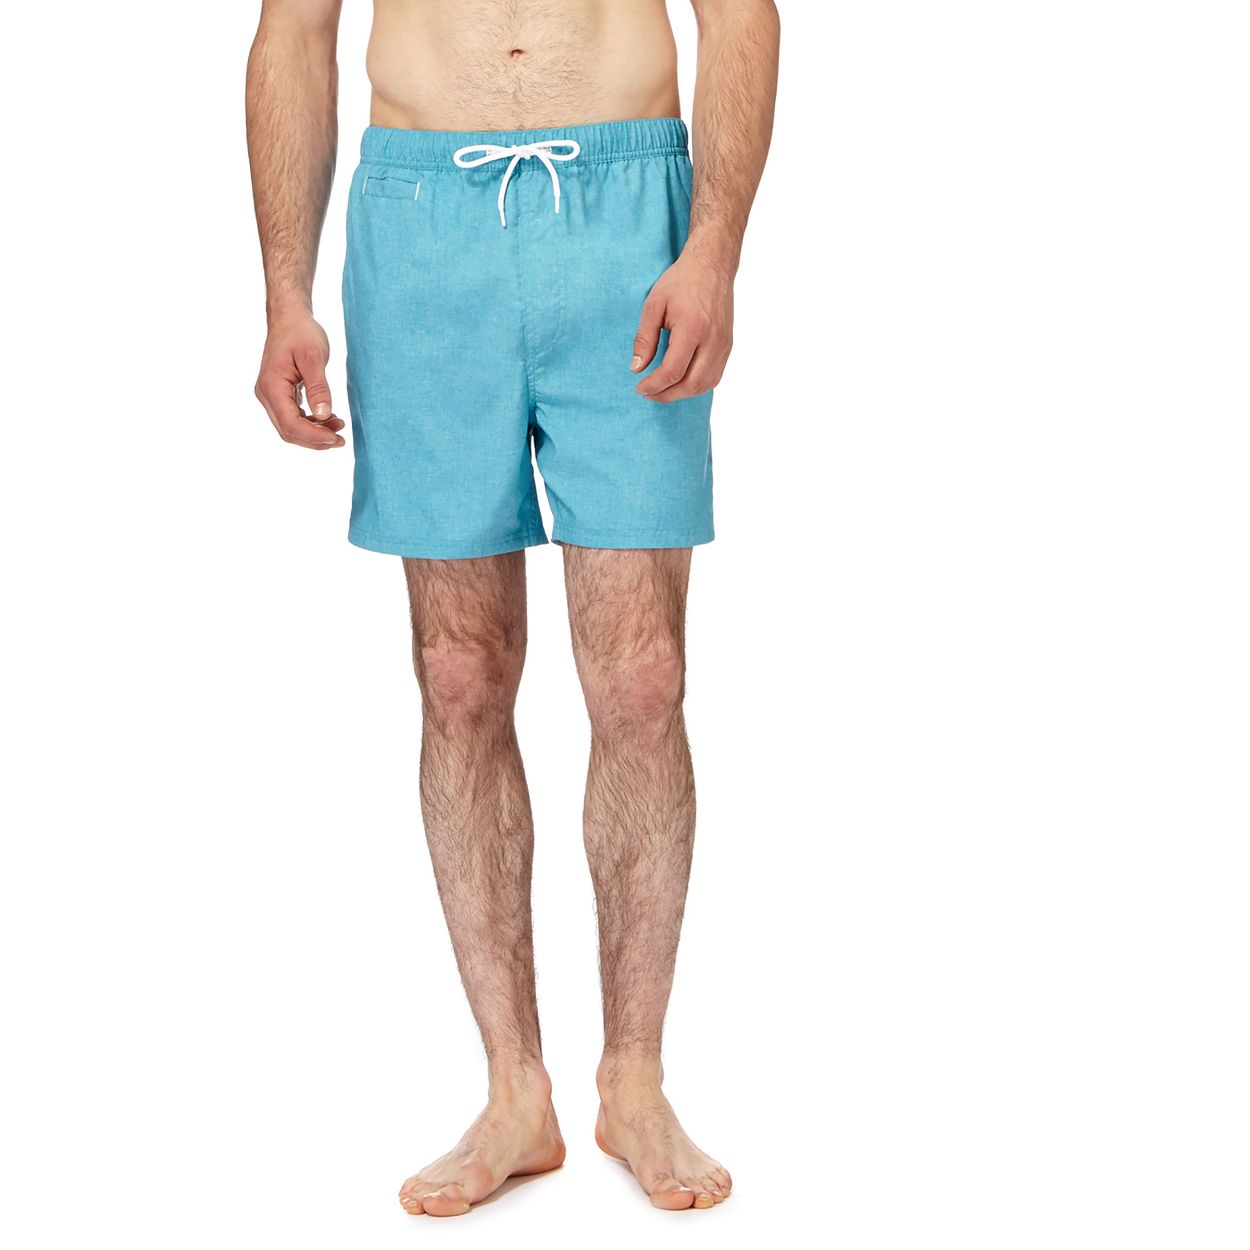 Red Herring Turquoise Blue swim shorts